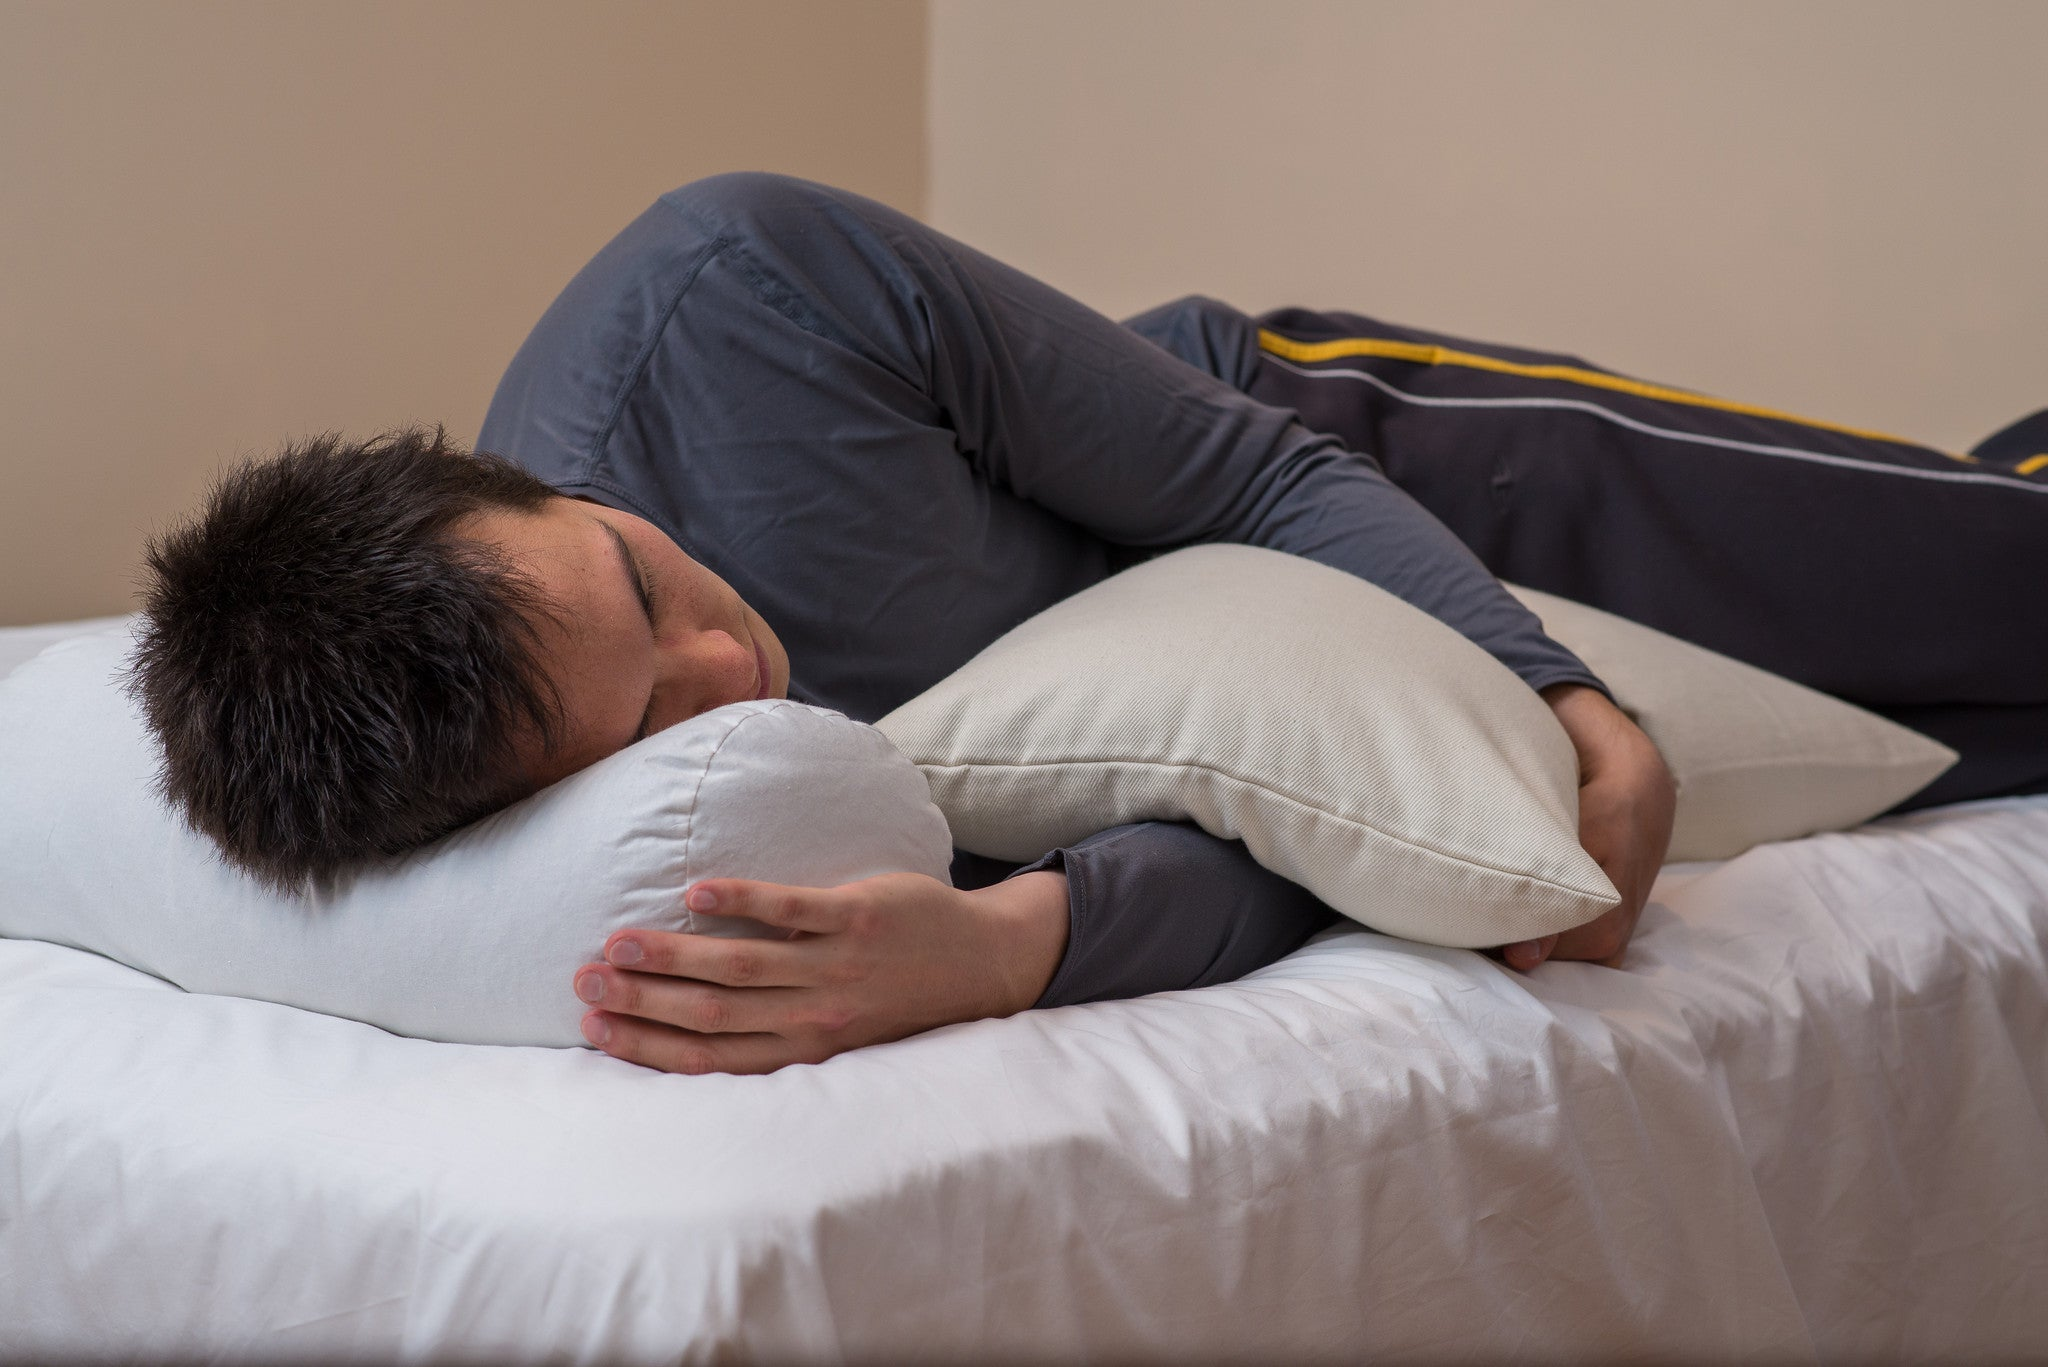 The ComfyNeck pillow is ideal for side sleepers